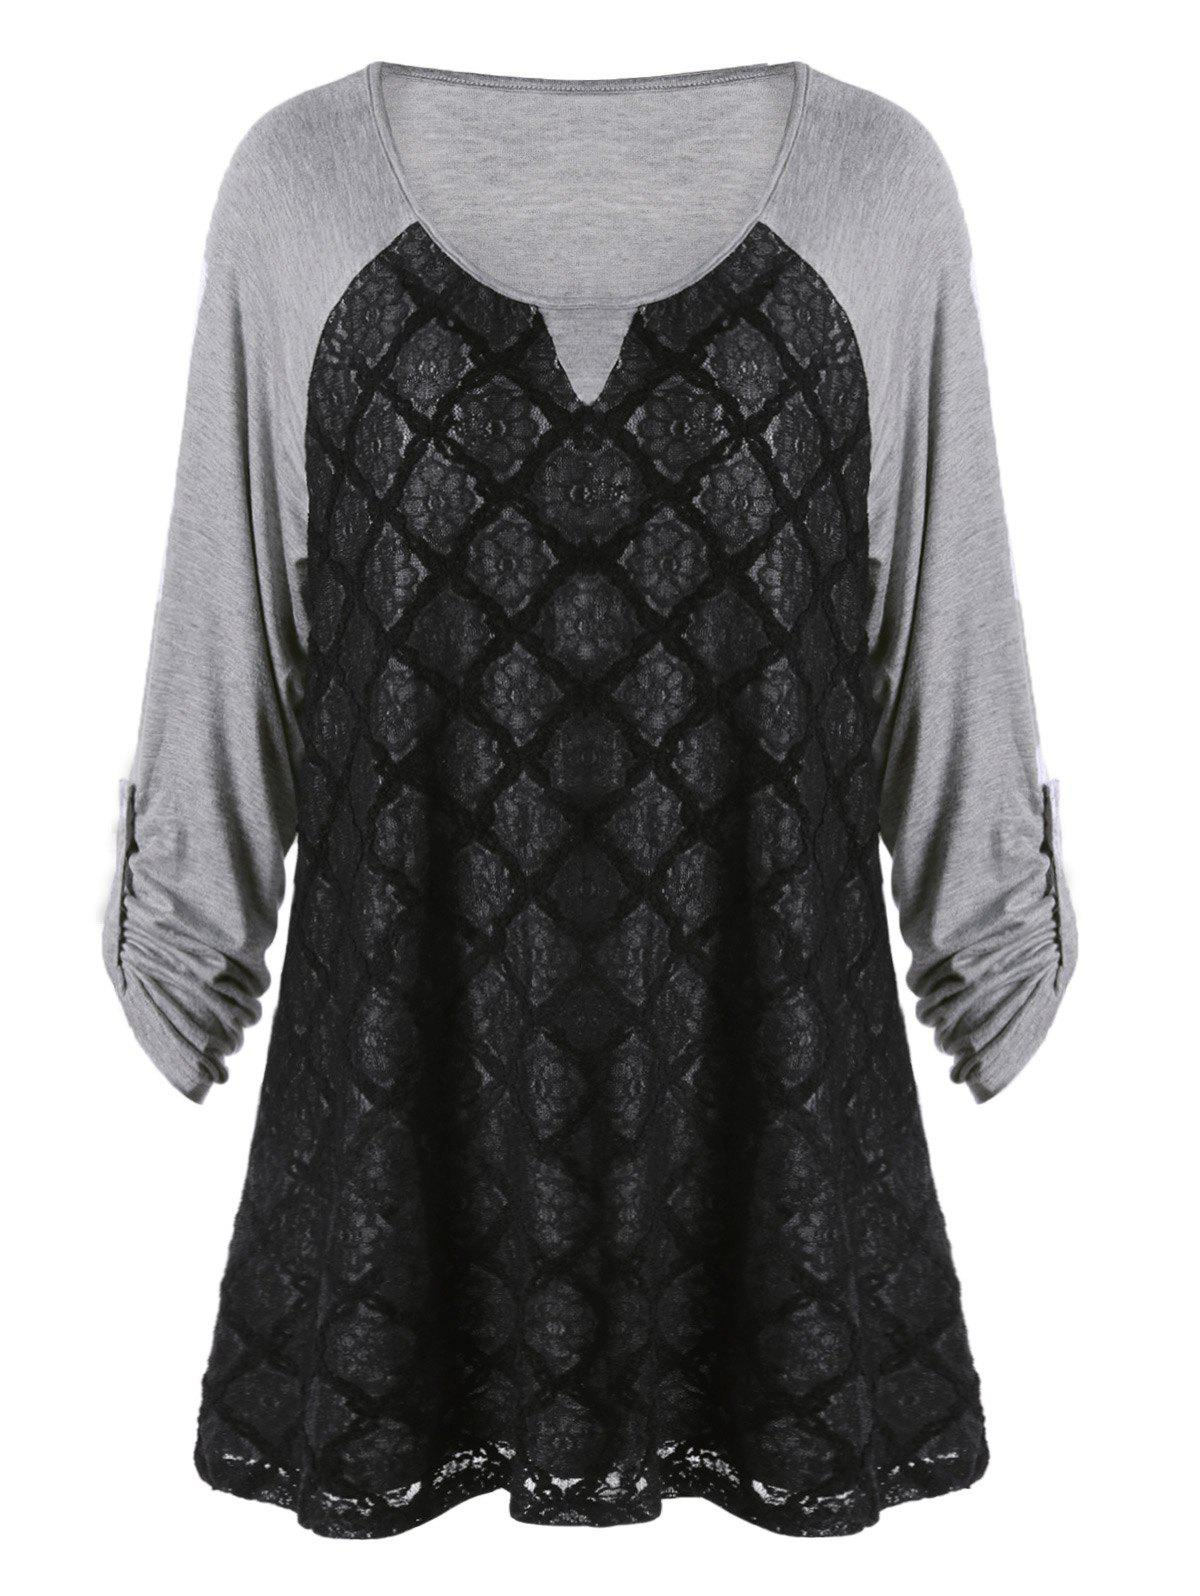 Plus Size Lace Panel Raglan Sleeve TopWOMEN<br><br>Size: 5XL; Color: BLACK AND GREY; Material: Cotton,Polyester; Shirt Length: Long; Sleeve Length: Three Quarter; Collar: Scoop Neck; Style: Casual; Season: Fall,Spring; Sleeve Type: Raglan Sleeve; Embellishment: Lace,Panel; Pattern Type: Floral; Weight: 0.3800kg; Package Contents: 1 x T-shirt;